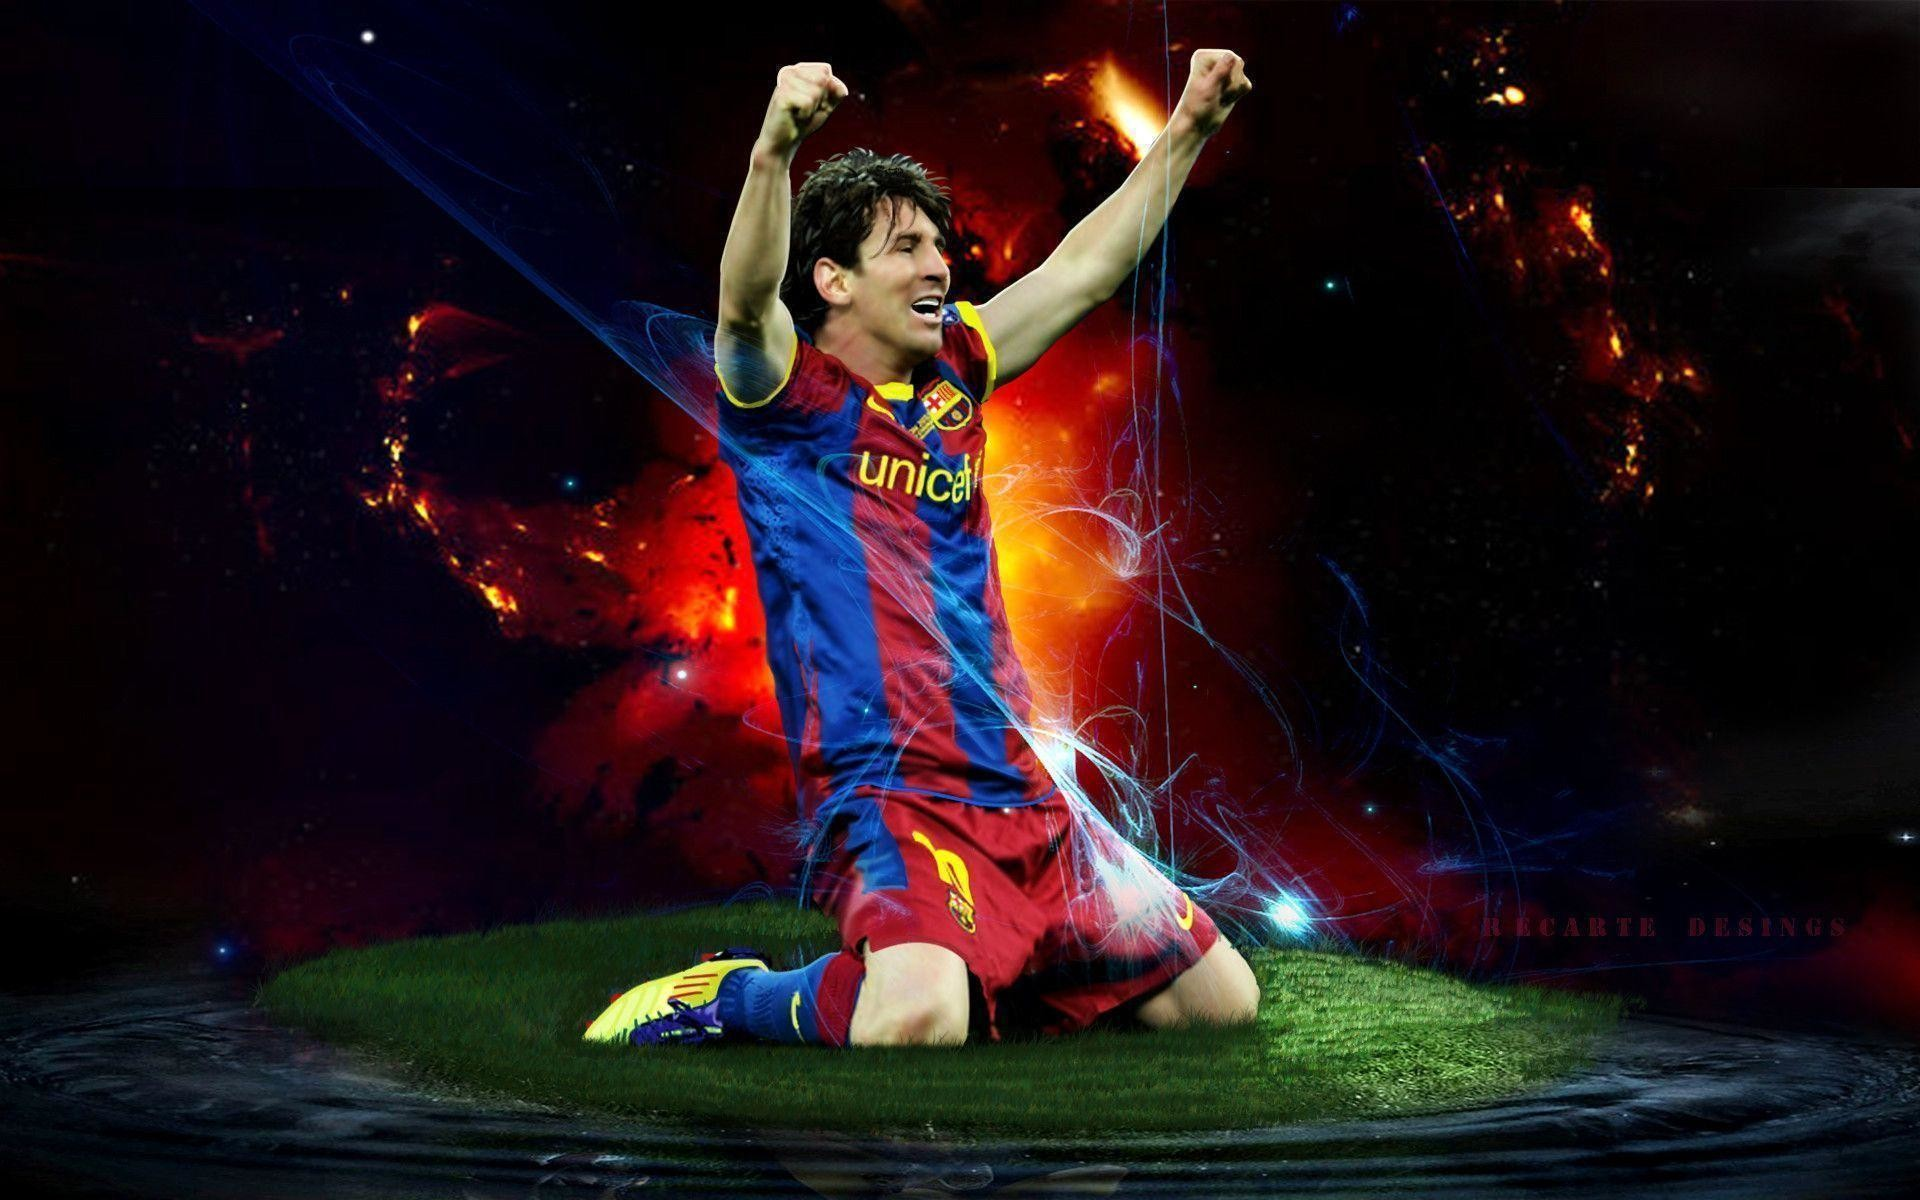 Lionel Messi 2018 Wallpapers 80 images 1920x1200